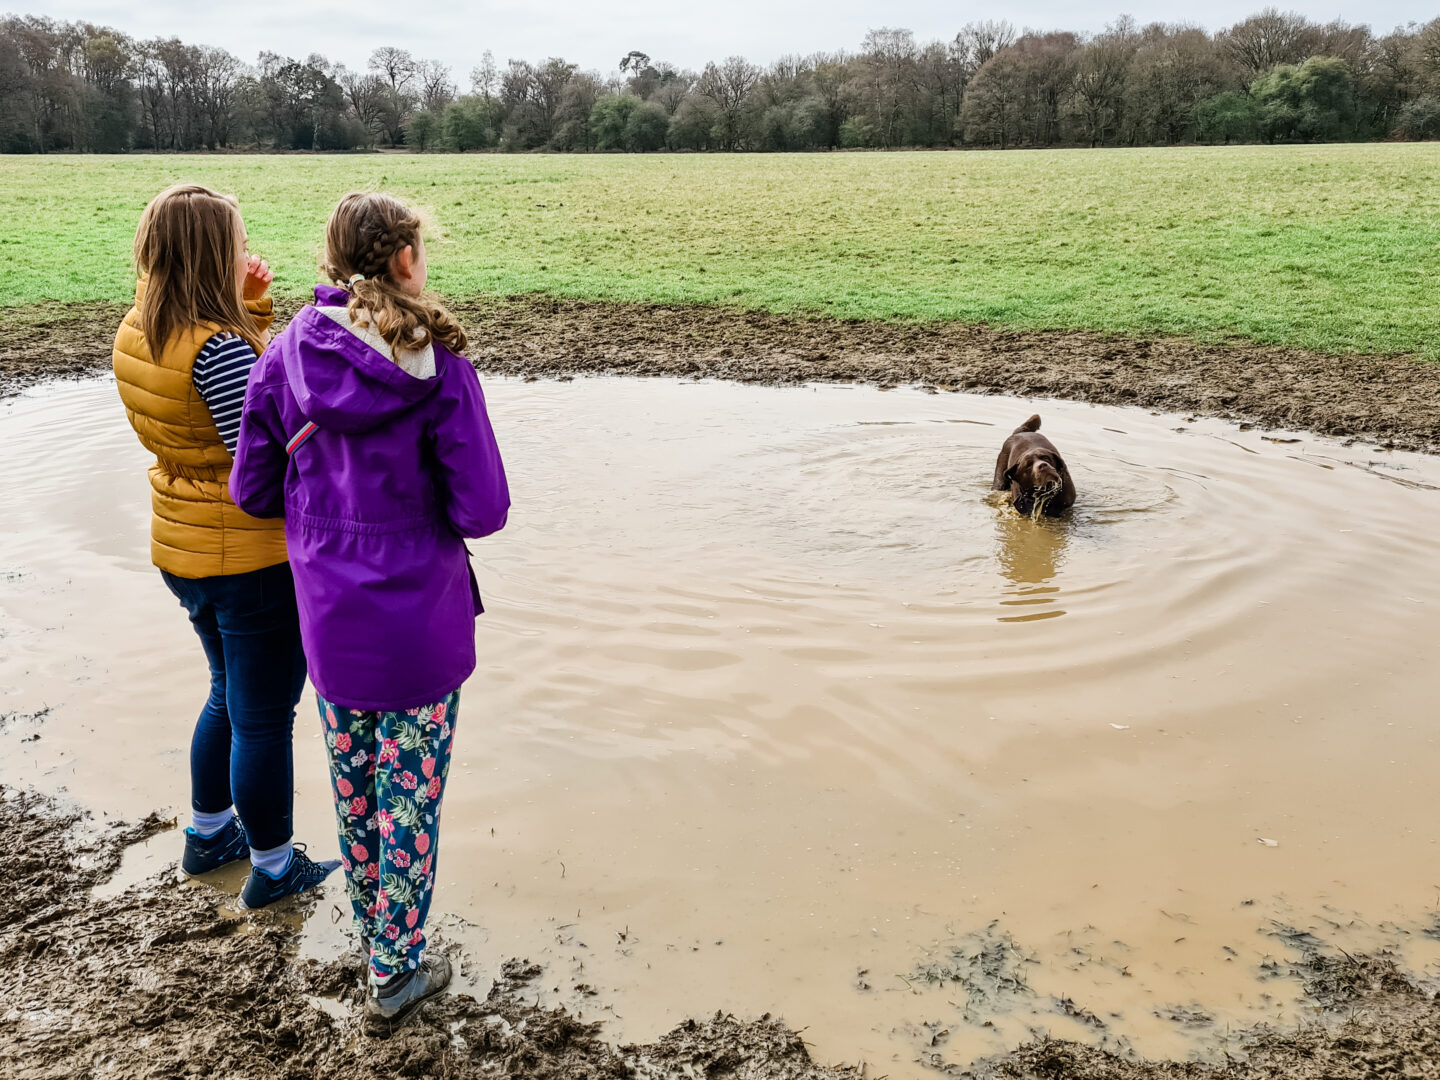 two women looking at a dog in a large muddy puddle